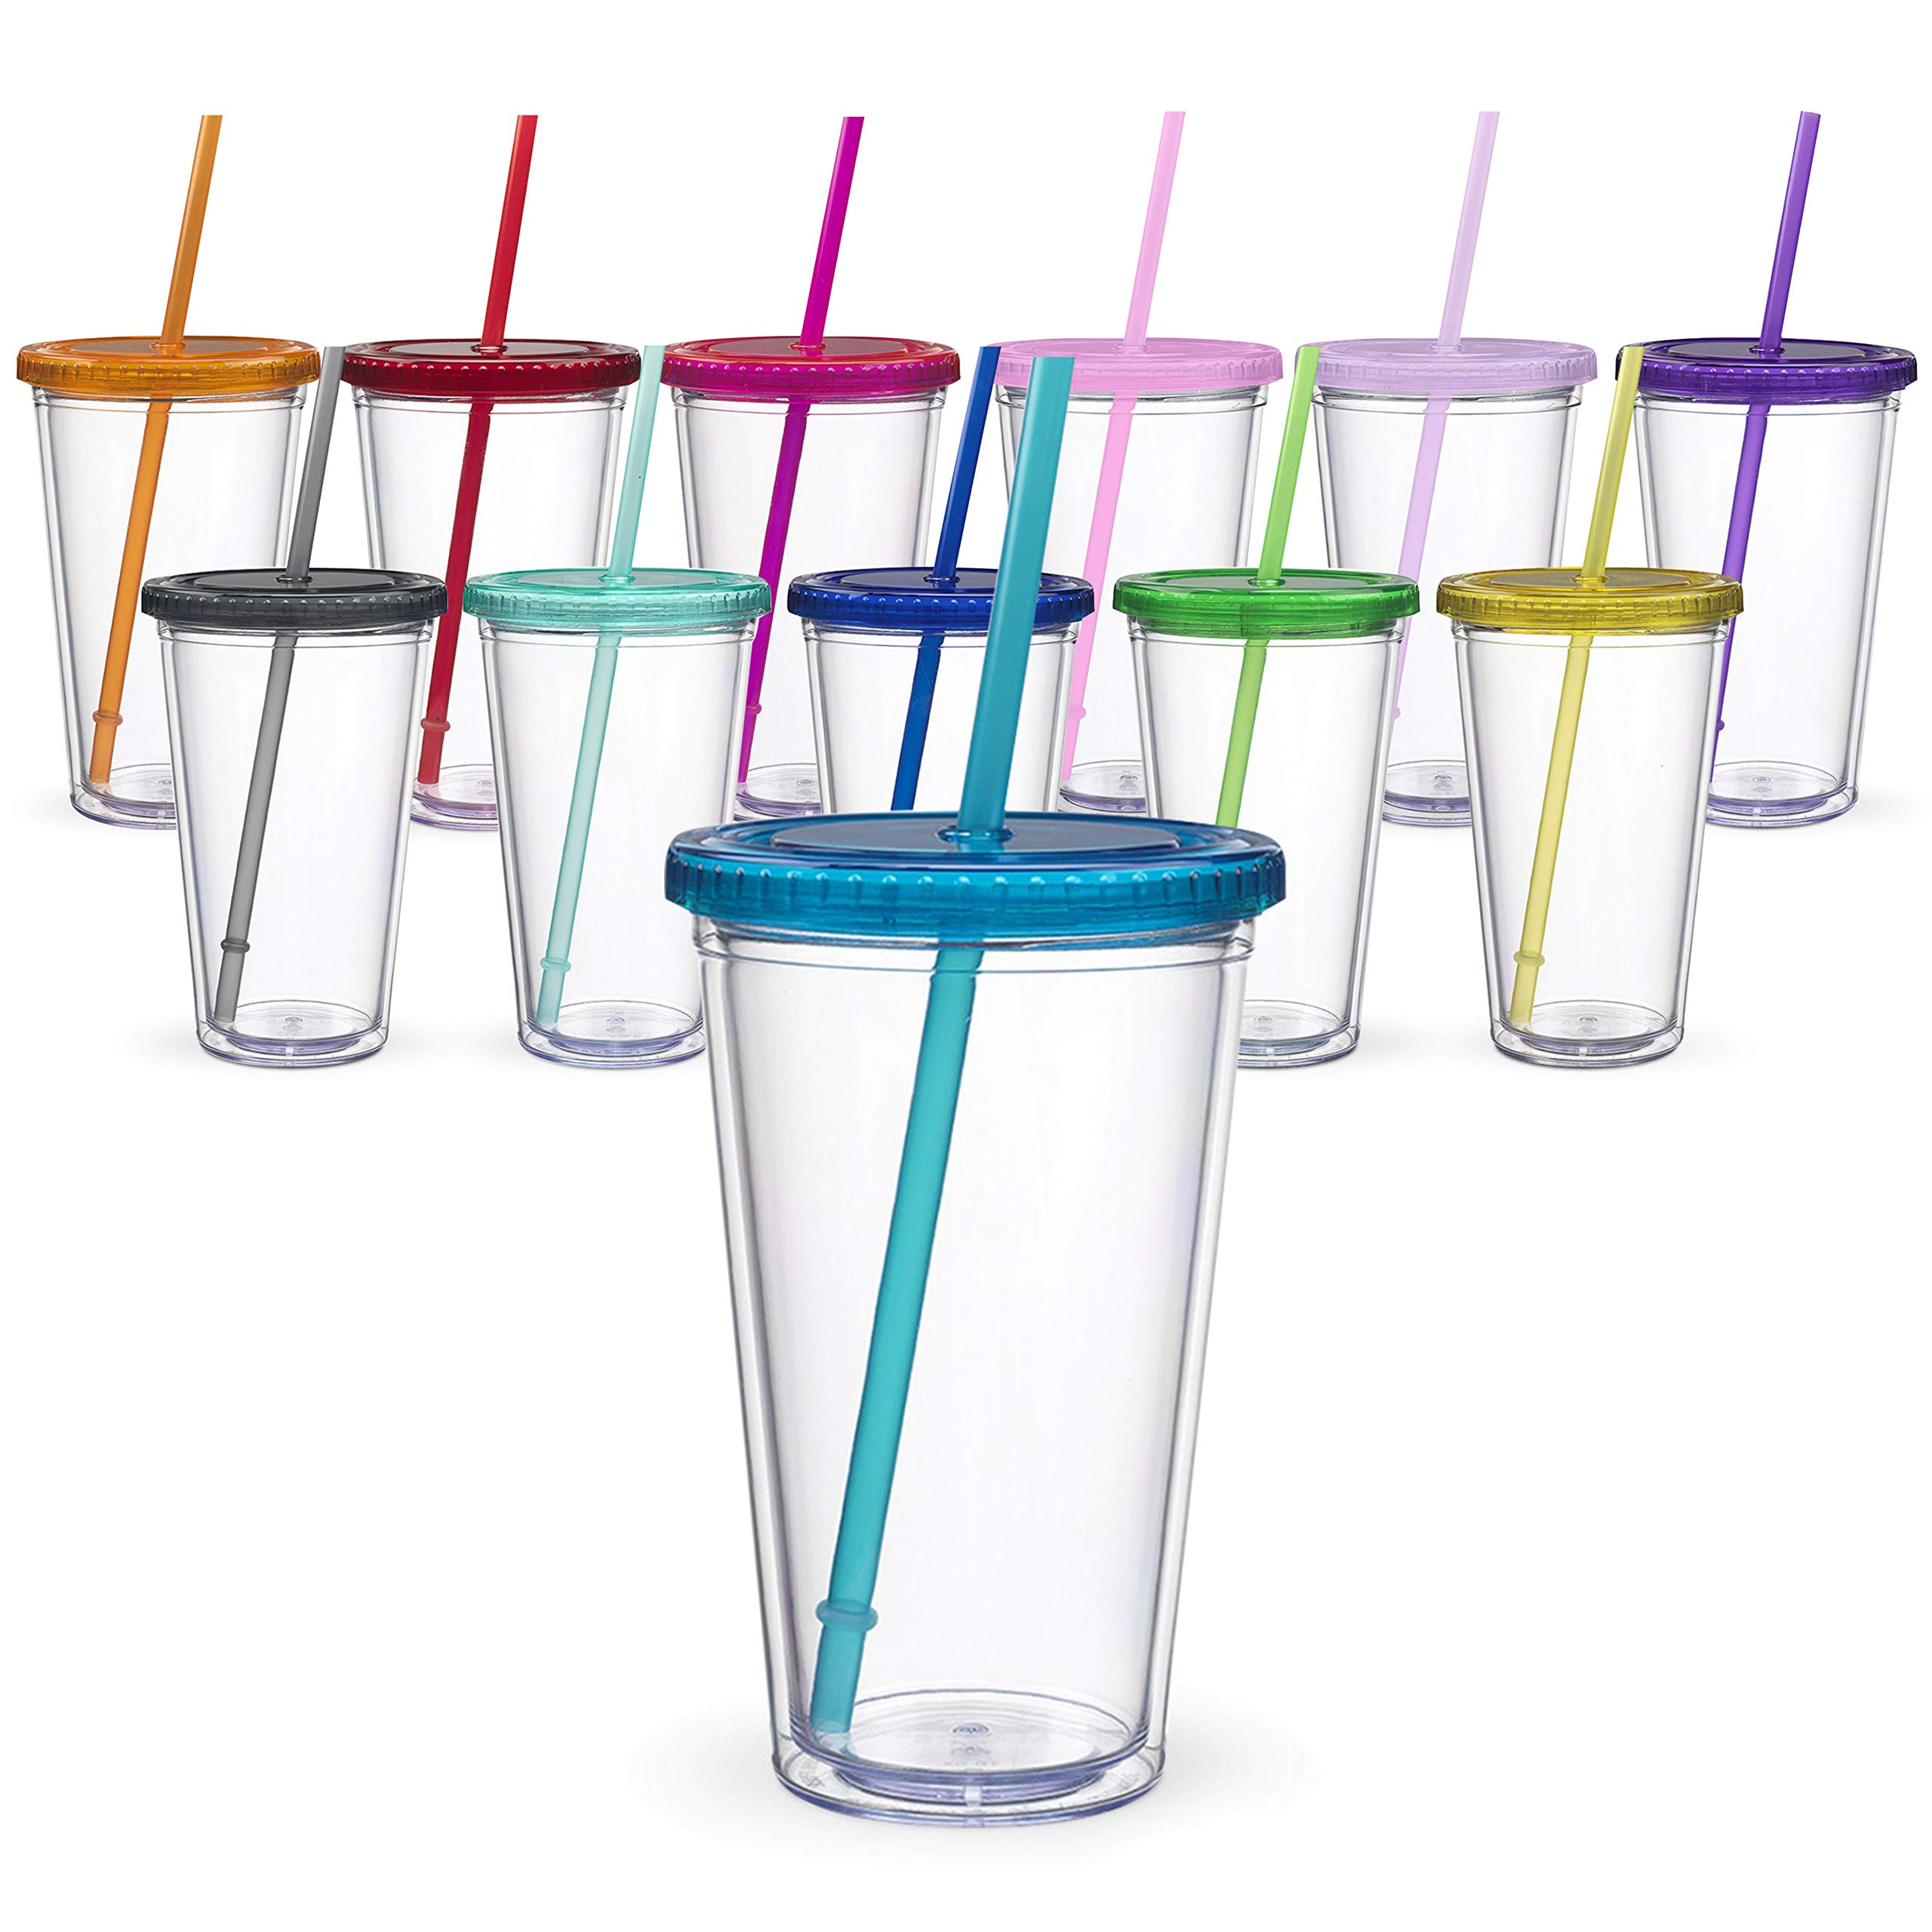 Maars Classic Insulated Tumblers 16 oz. | Double Wall Acrylic | 12 pack by Maars® Drinkware